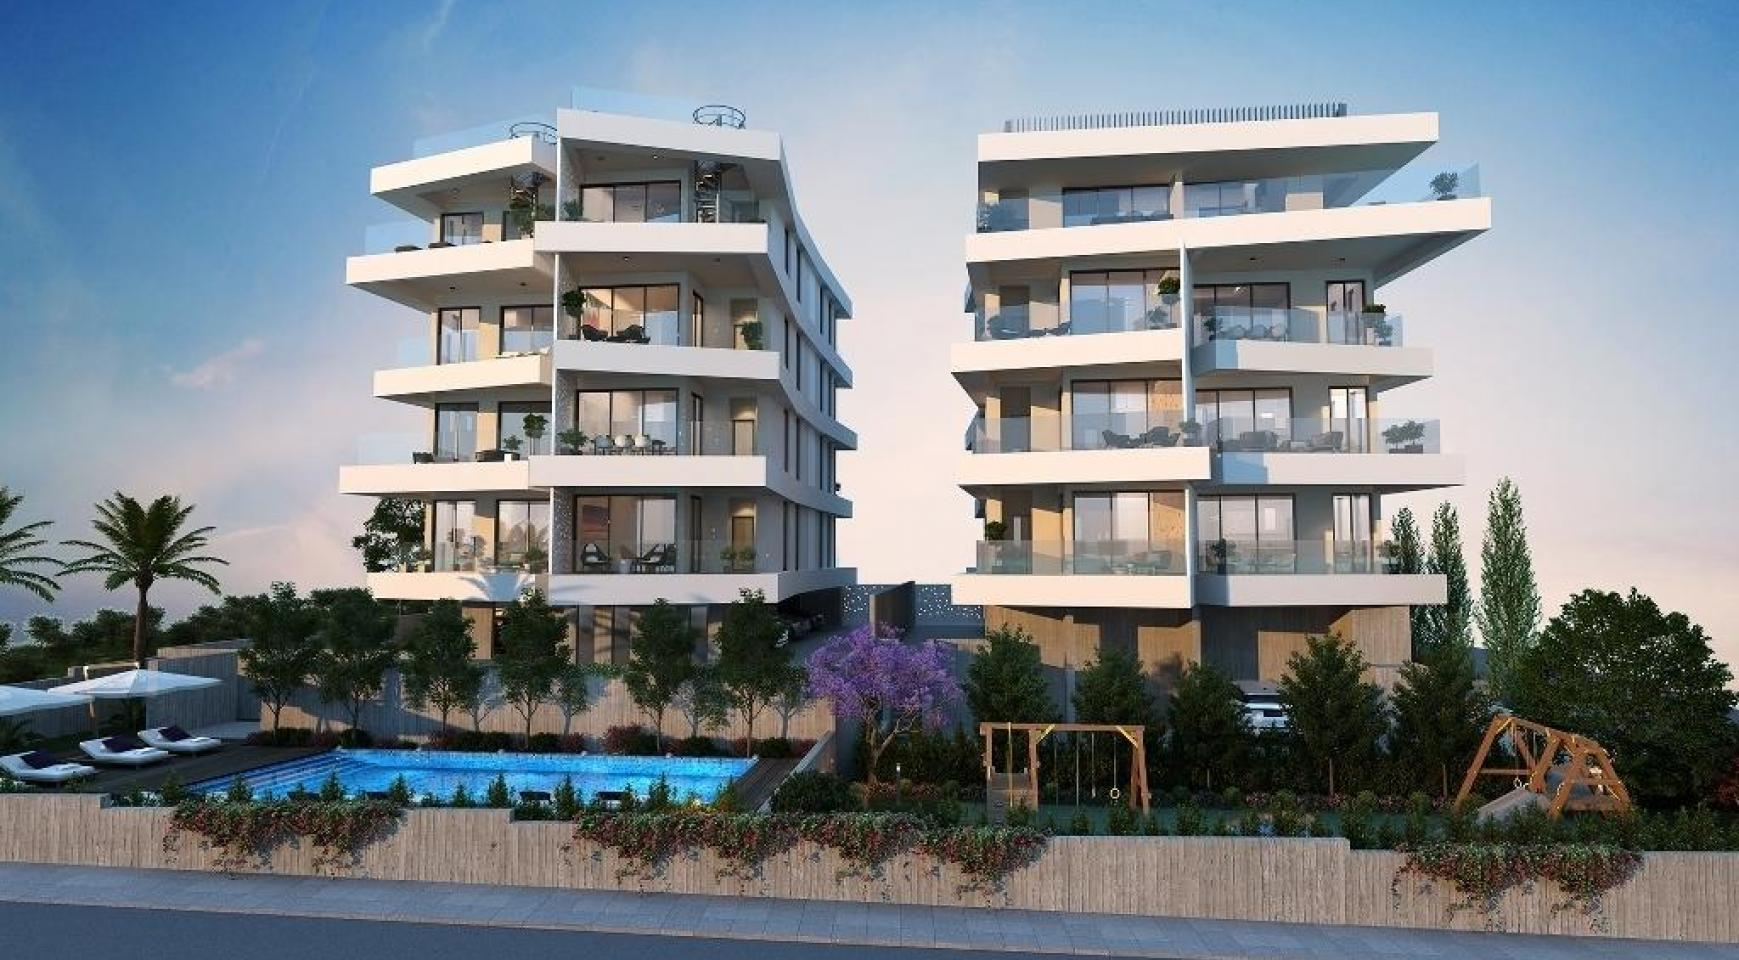 New 3 Bedroom Penthouse in a Contemporary Complex in Germasogeia - 6